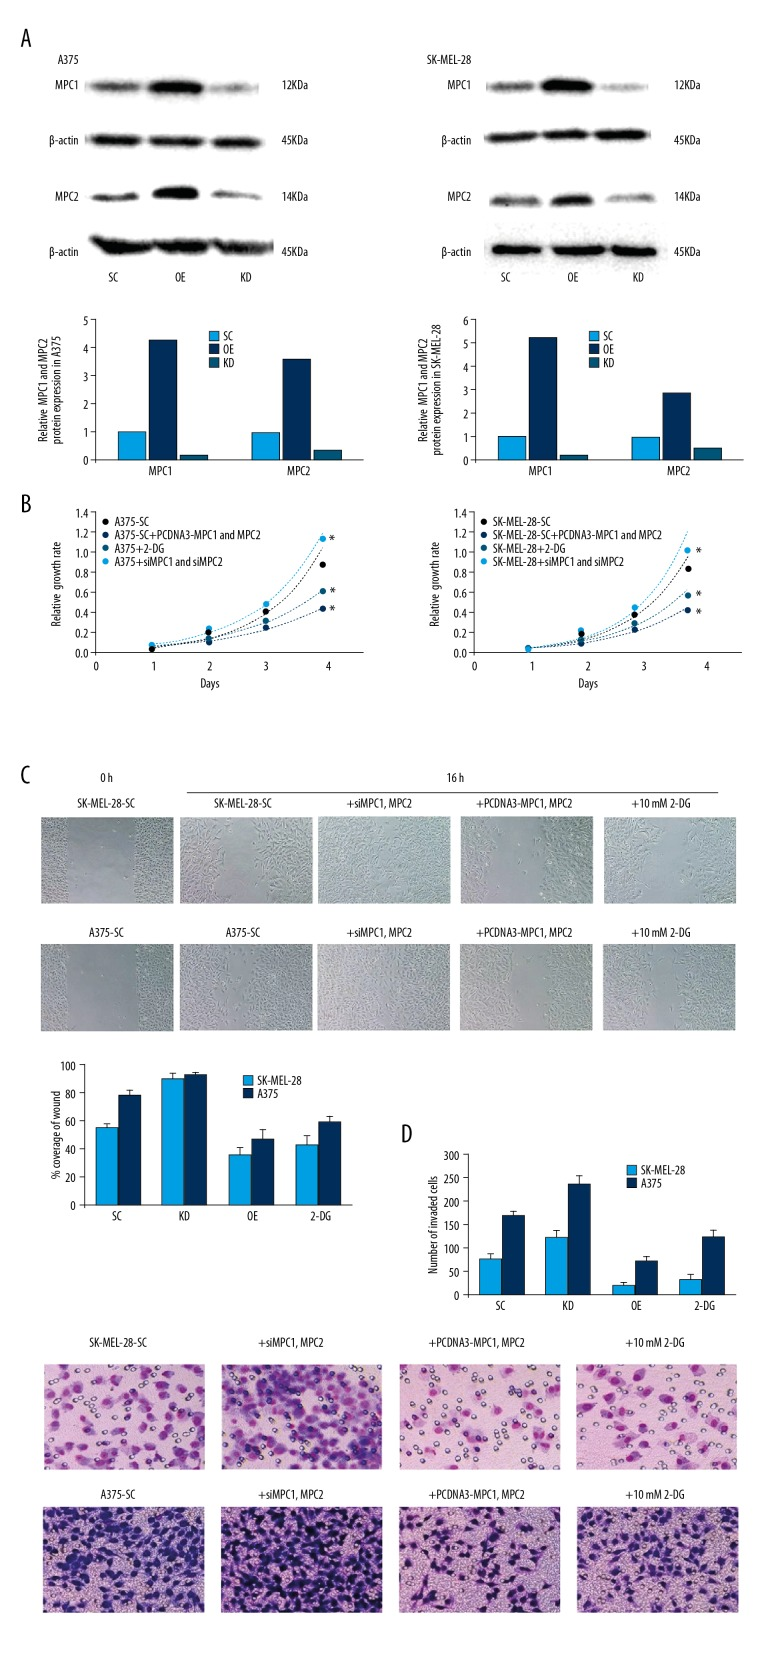 MPC1 and MPC2 repress melanoma cells proliferation and migration. ( A ) Western blot analysis showed overexpression or knockdown of MPC1 and MPC2 in A375 and SK-MEL-28 cells. The relative protein expression levels were quantified and are shown in the bar diagram. ( B ) Growth curves of A375 and SK-MEL-28 cells, which were transfected with MPC1 and MPC2, siRNAs against MPC1 and MPC2, scramble or treated with 10 mM 2-DG, respectively. * Indicates P